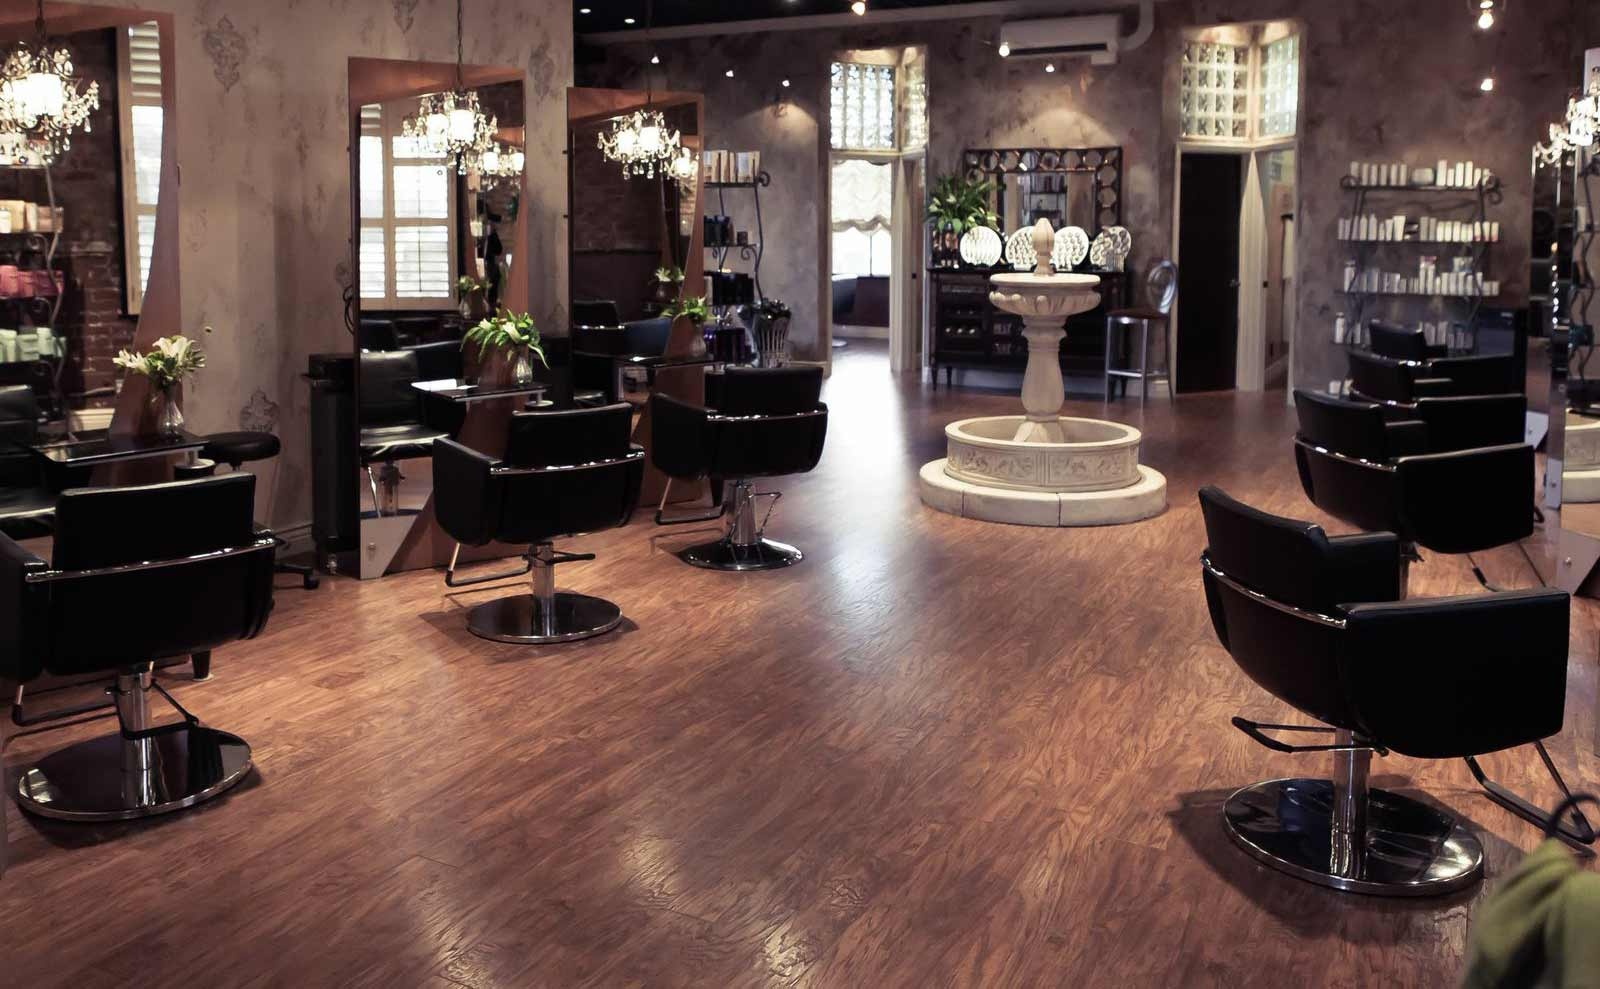 Elegant Hair Salon in Center of Town